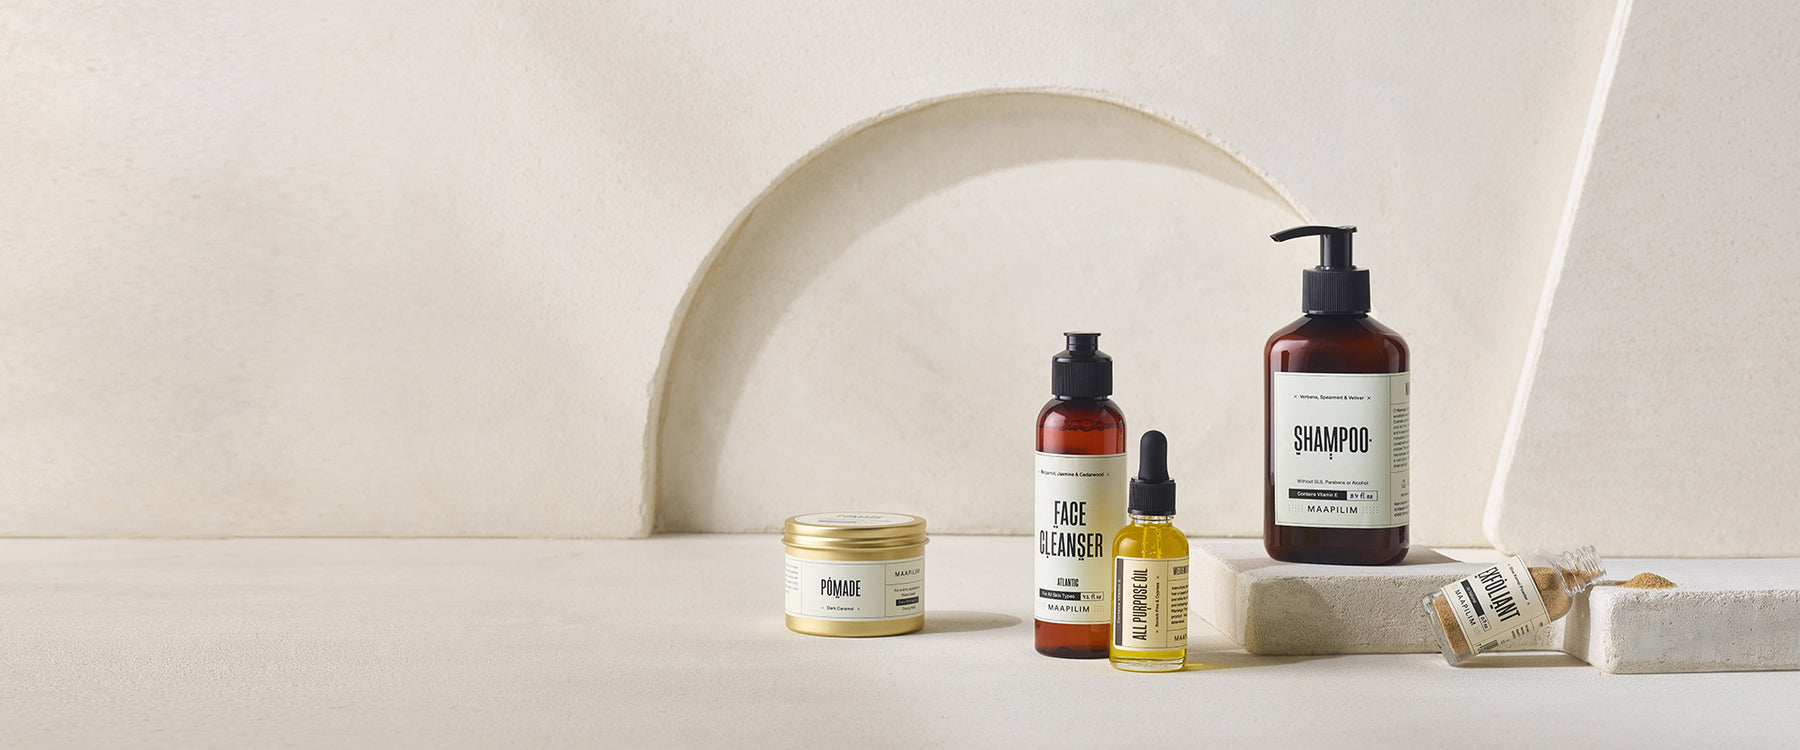 Maapilim - Grooming essentials from the Great Sea